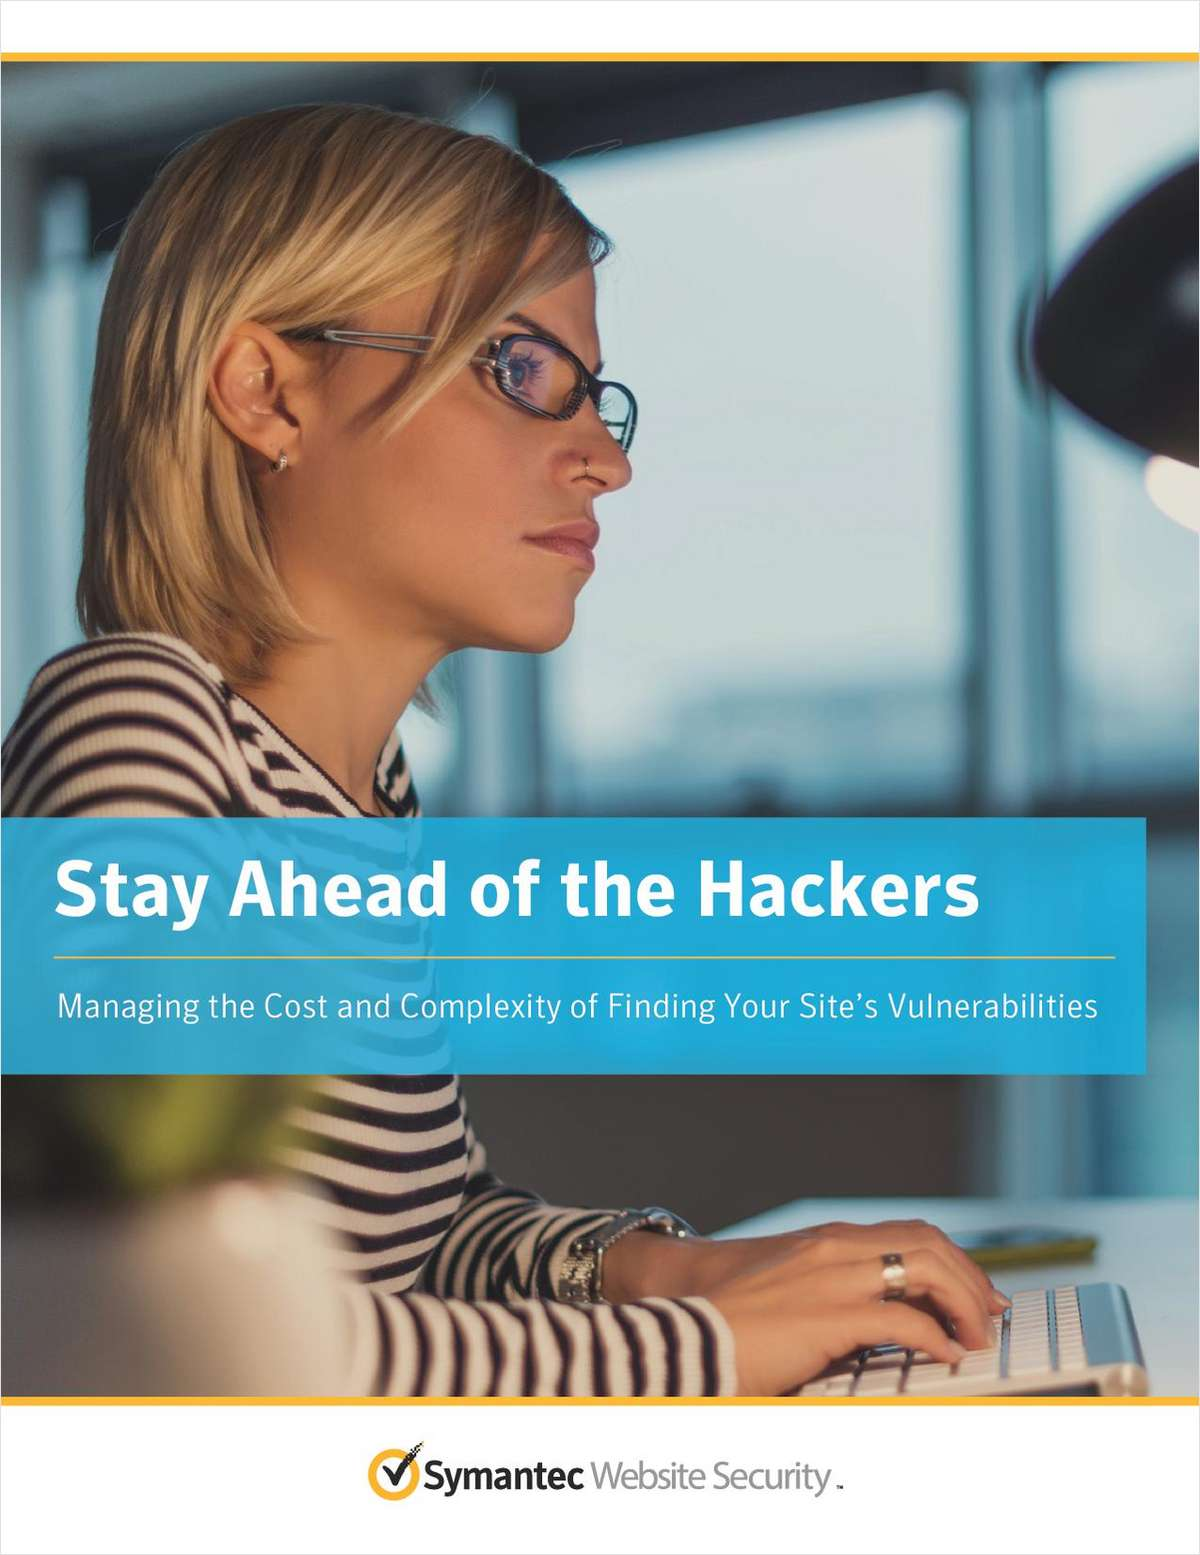 Stay Ahead of Hackers